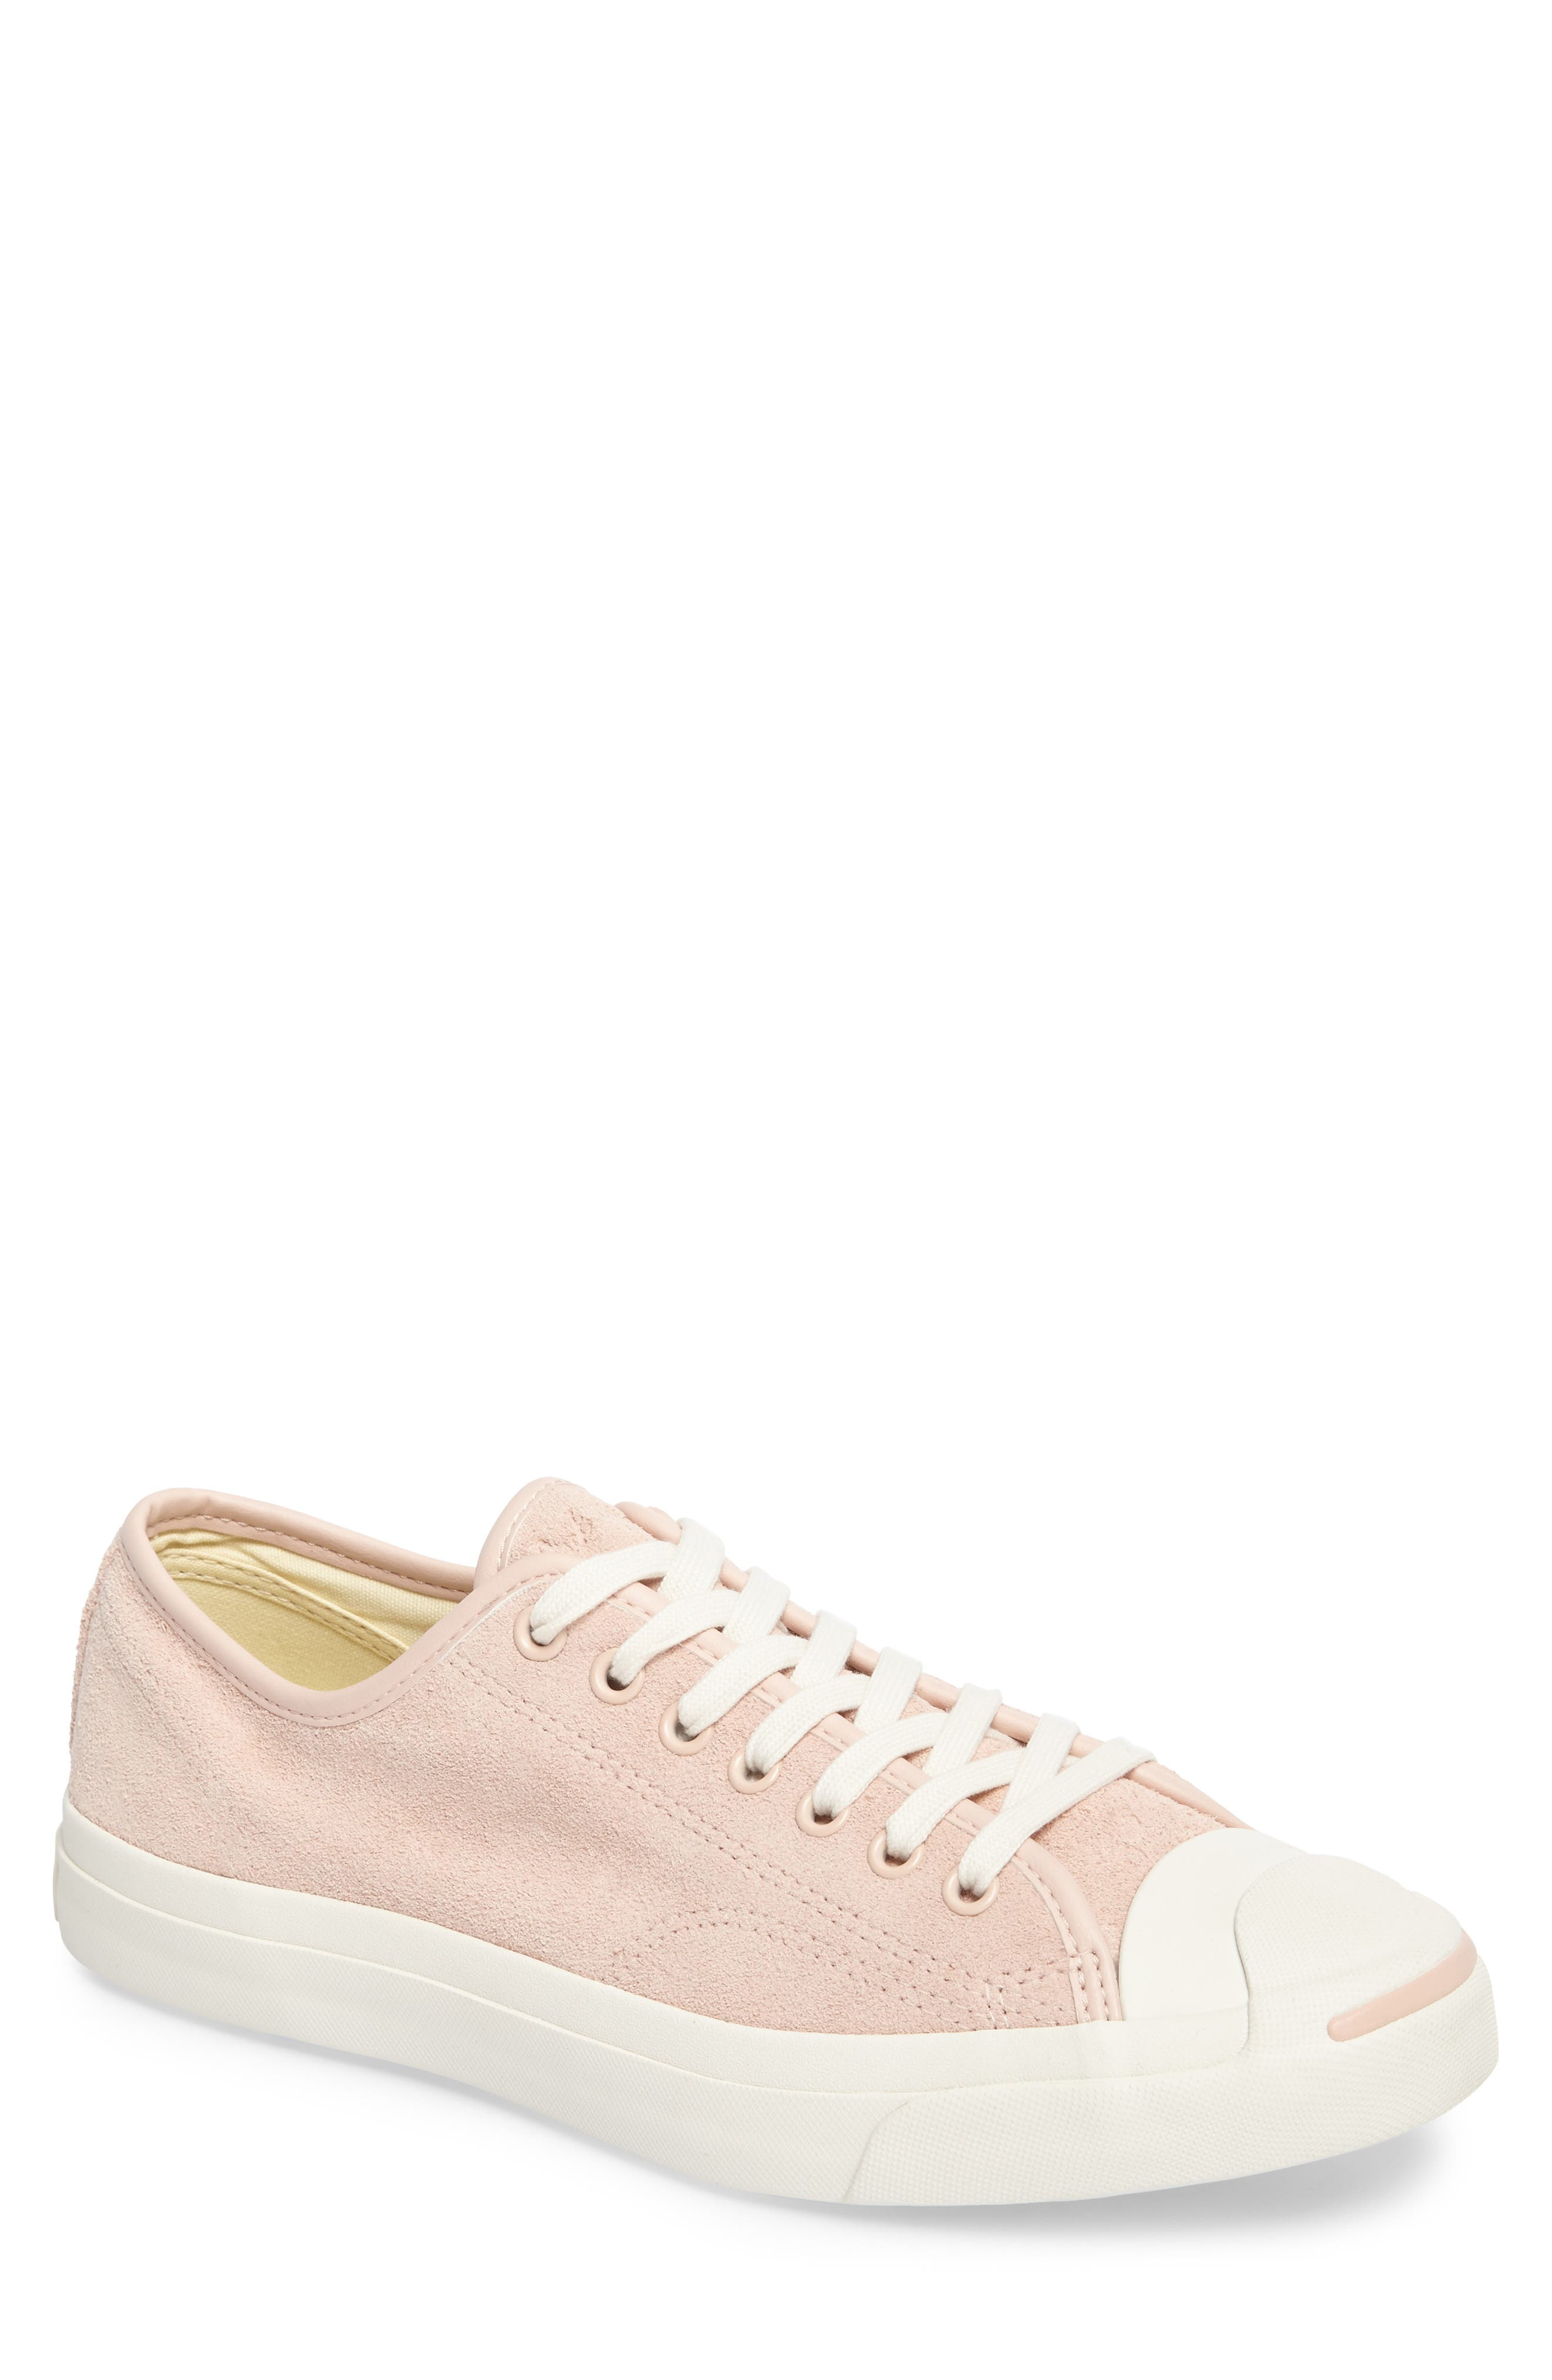 Converse Jack Purcell Sneaker (Men)